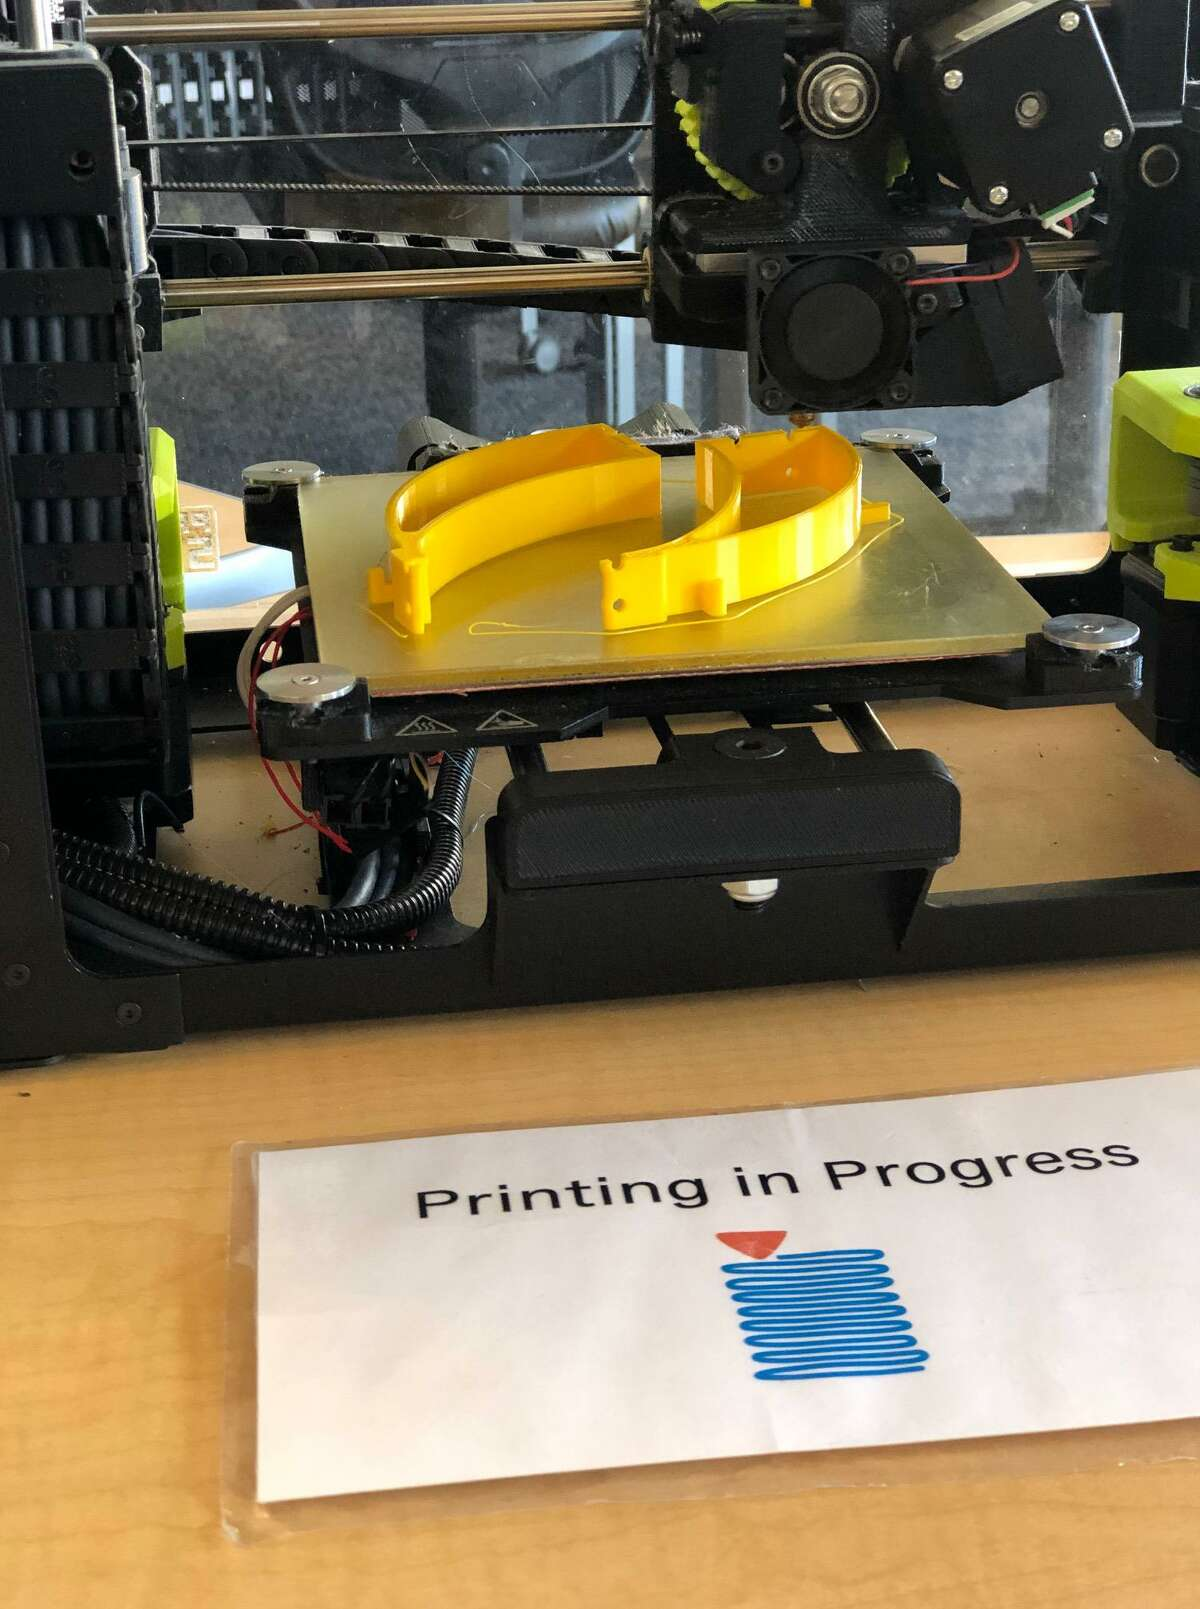 Parts for face shields to protect health care workers are being created on a 3D printer at the New Canaan Library.